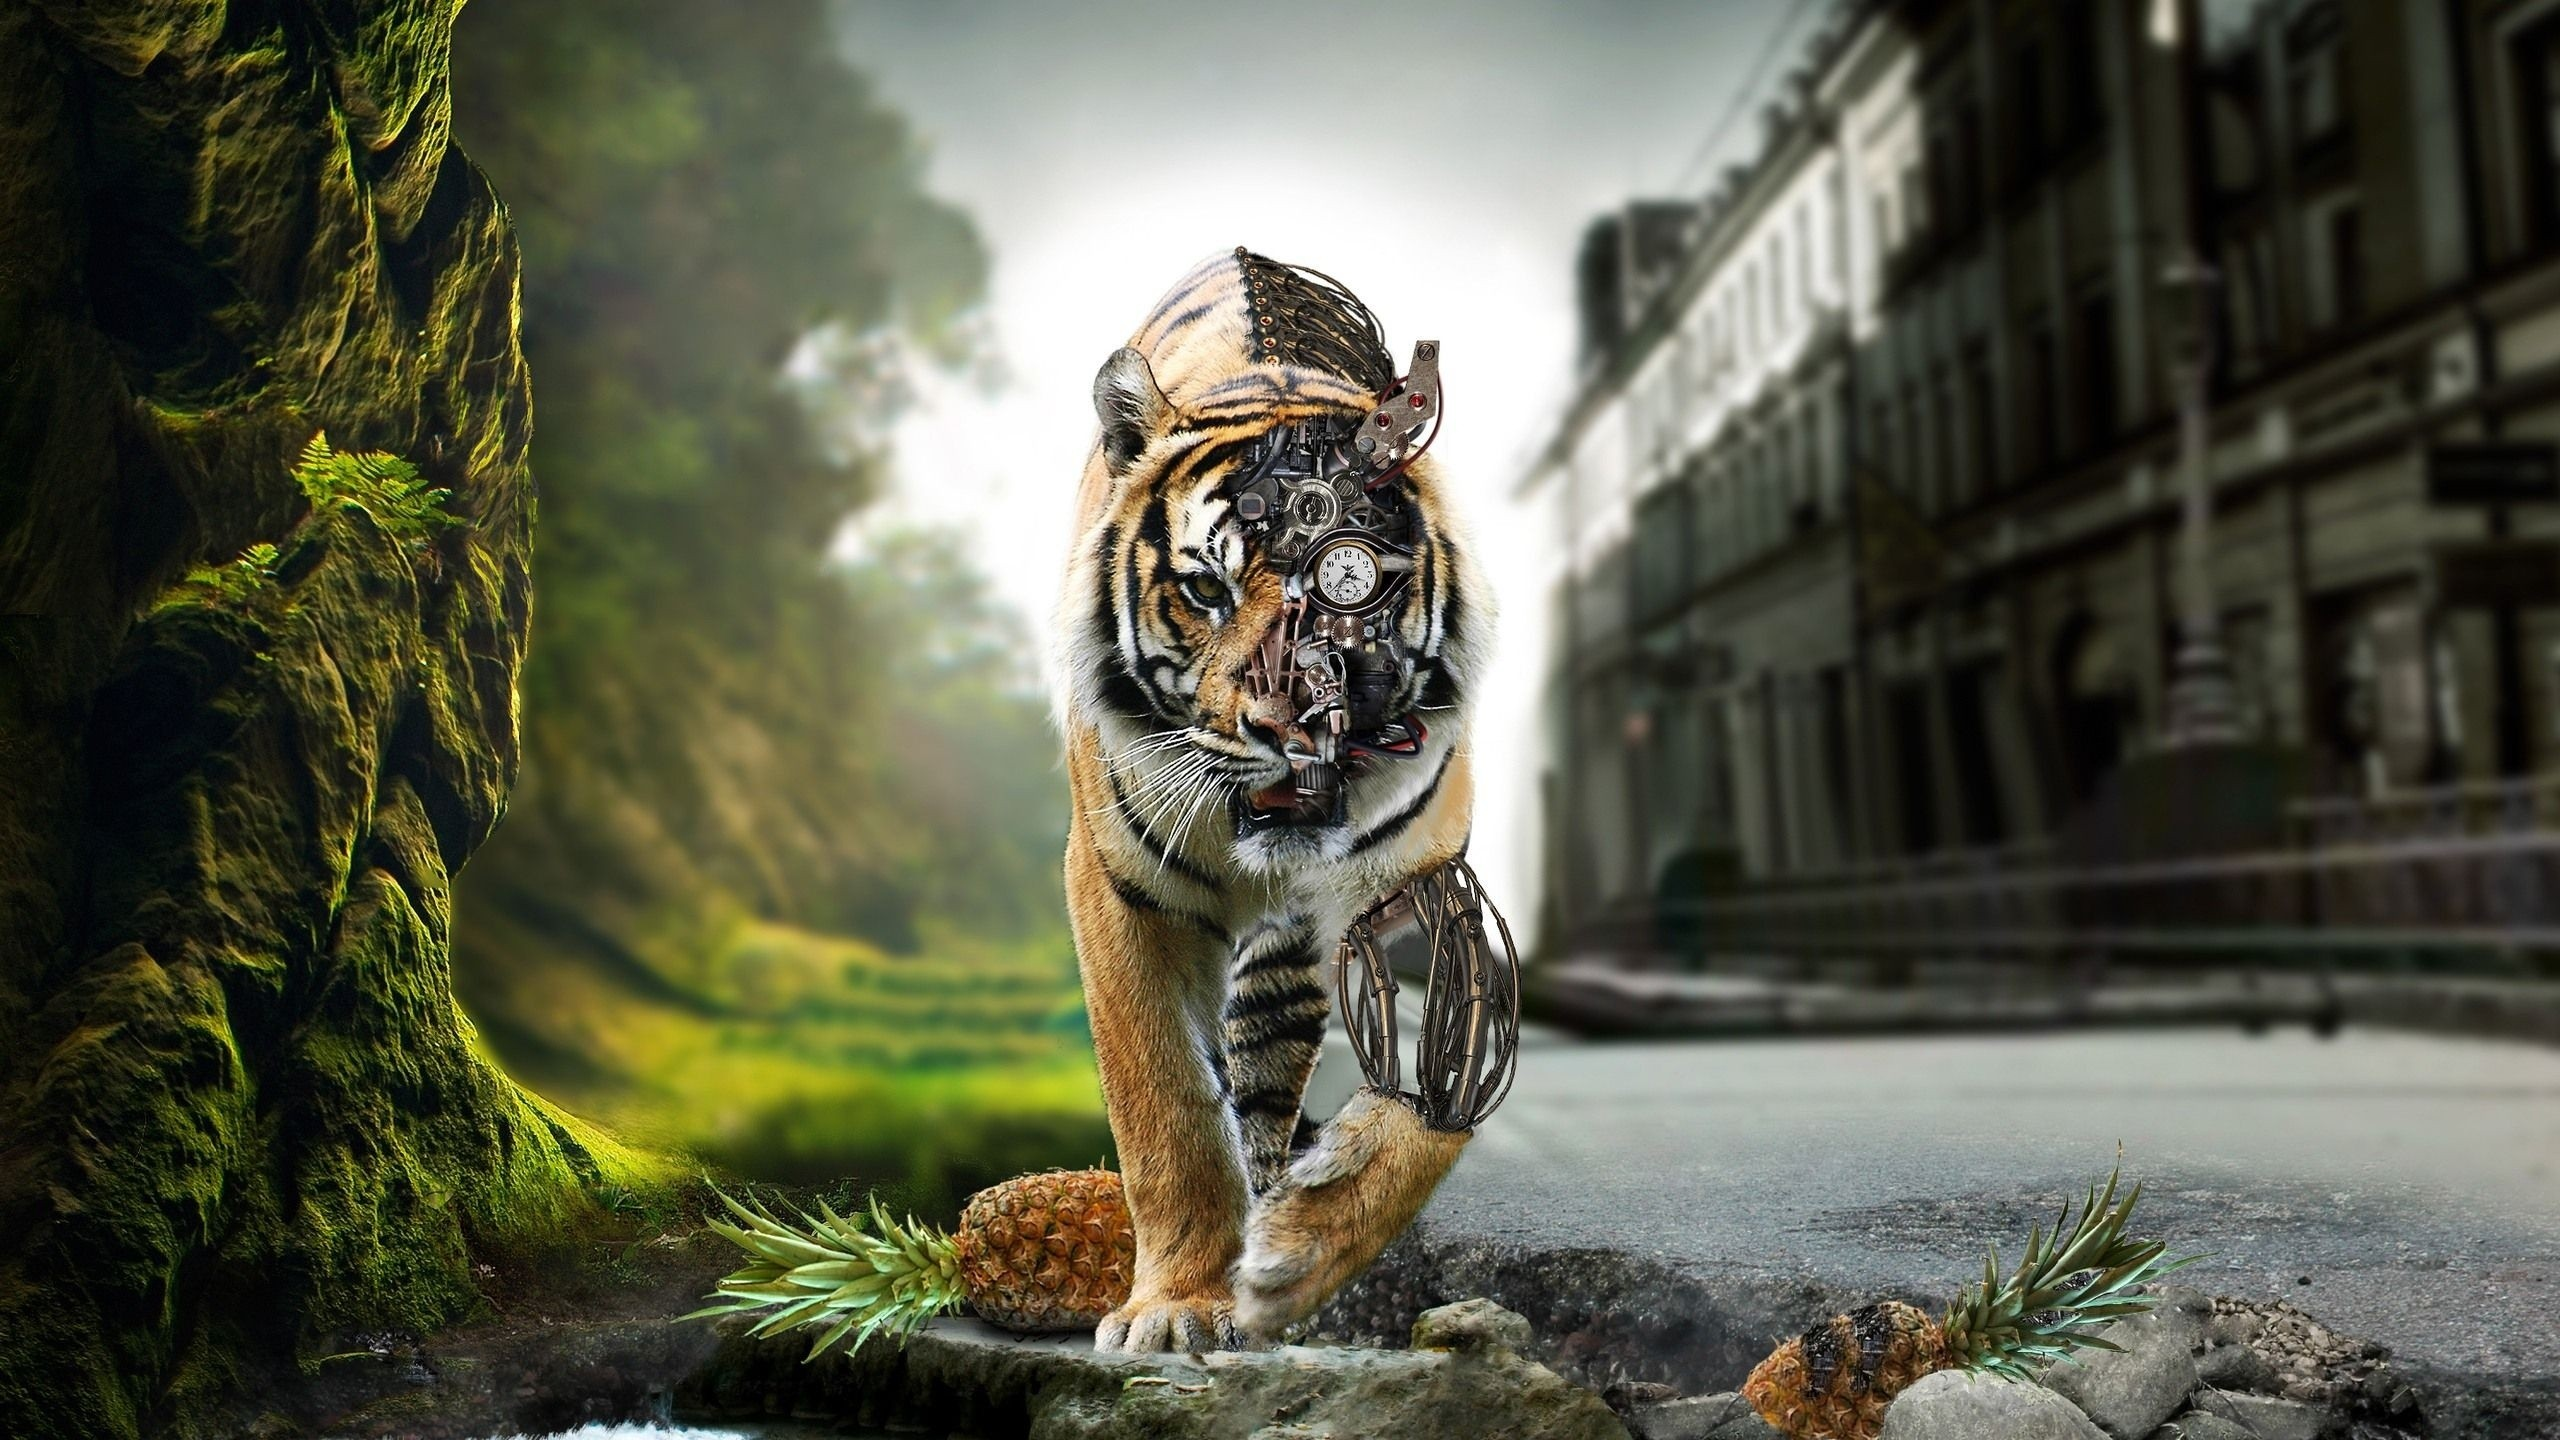 2560x1440px Awesome Wallpapers Hd Tiger | #297517